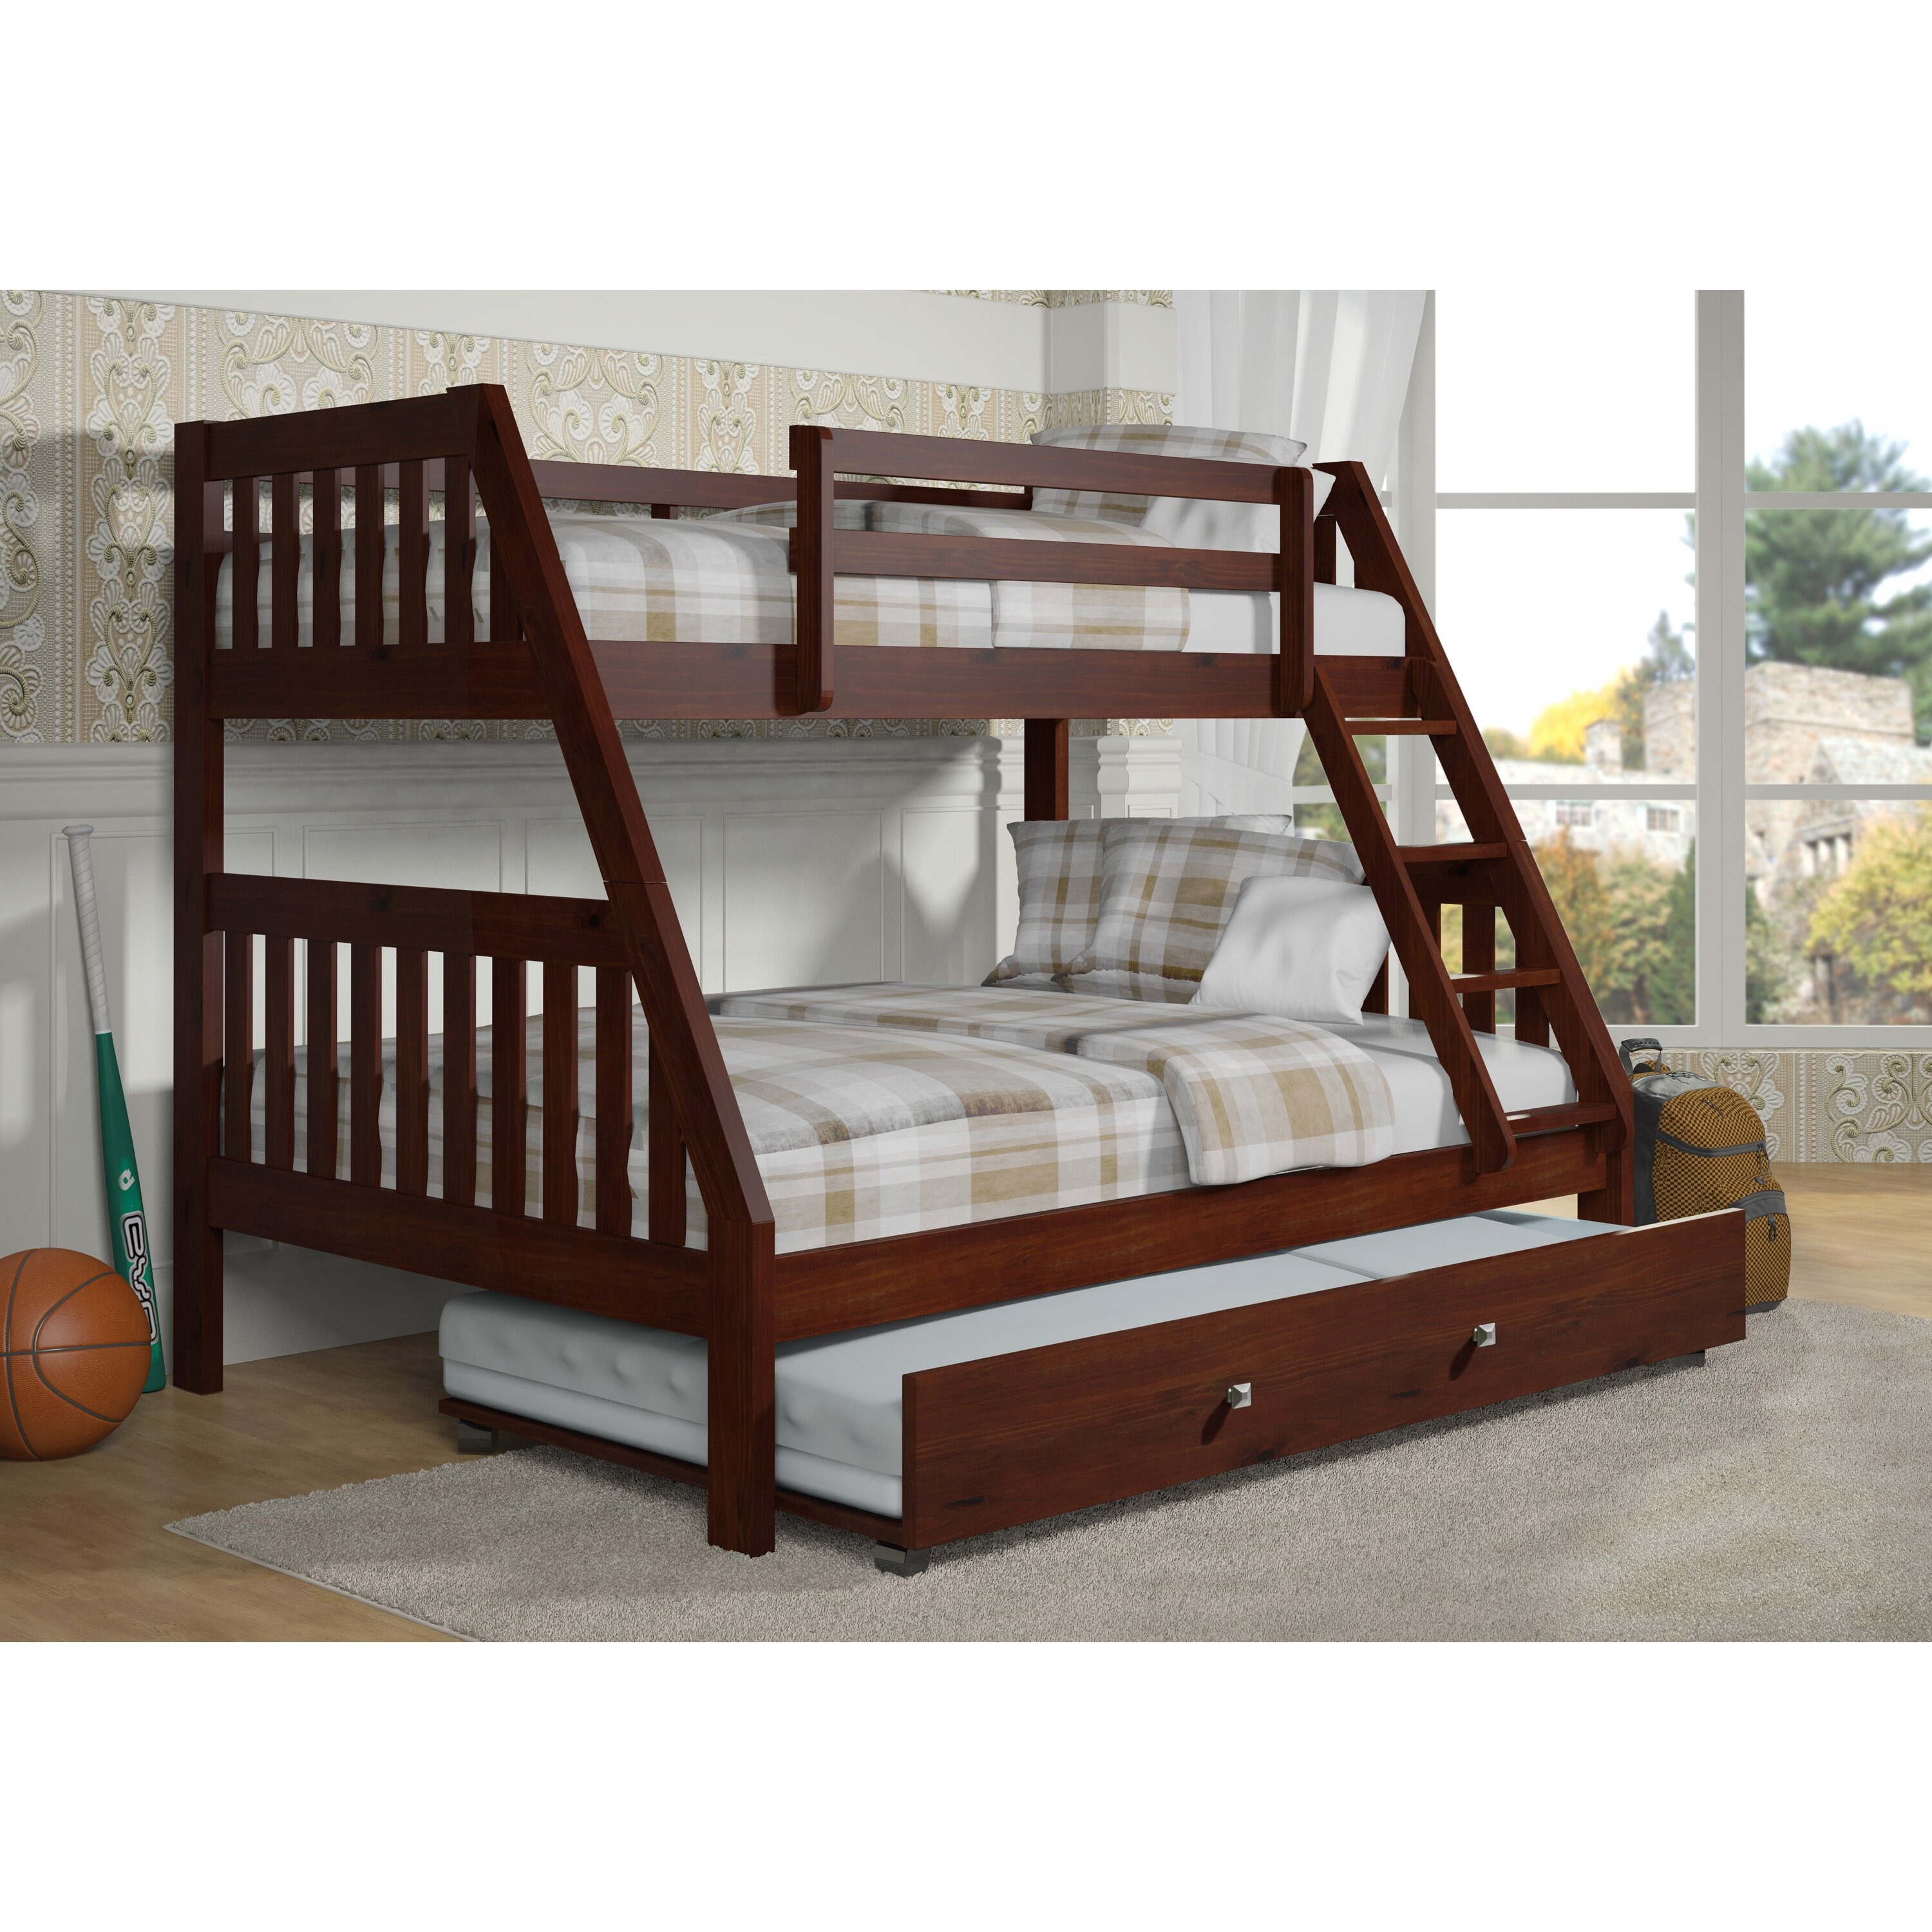 Donco kids washington twin over full bunk bed with trundle for Bunk beds for kids